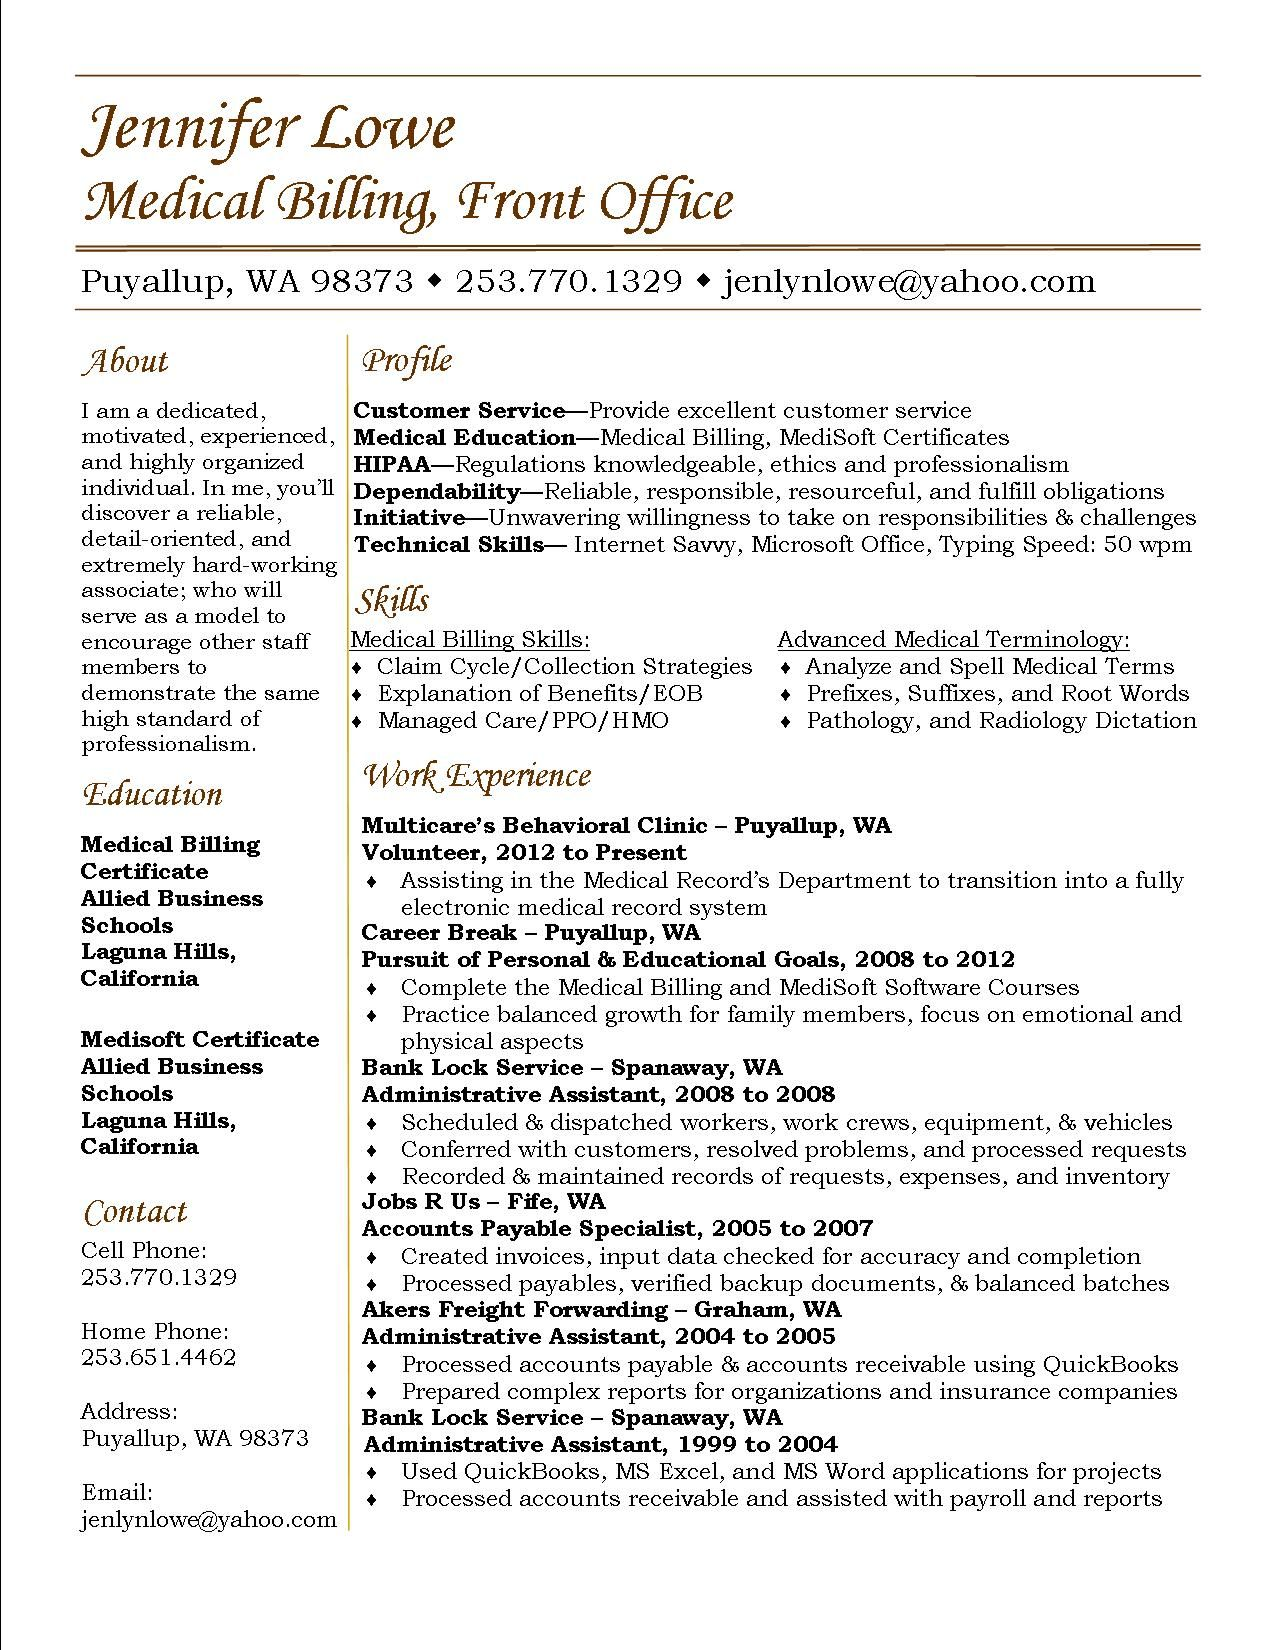 jennifer lowe resume medical billing and coding assistant format for job apply with Resume Resume Format For Medical Coding Job